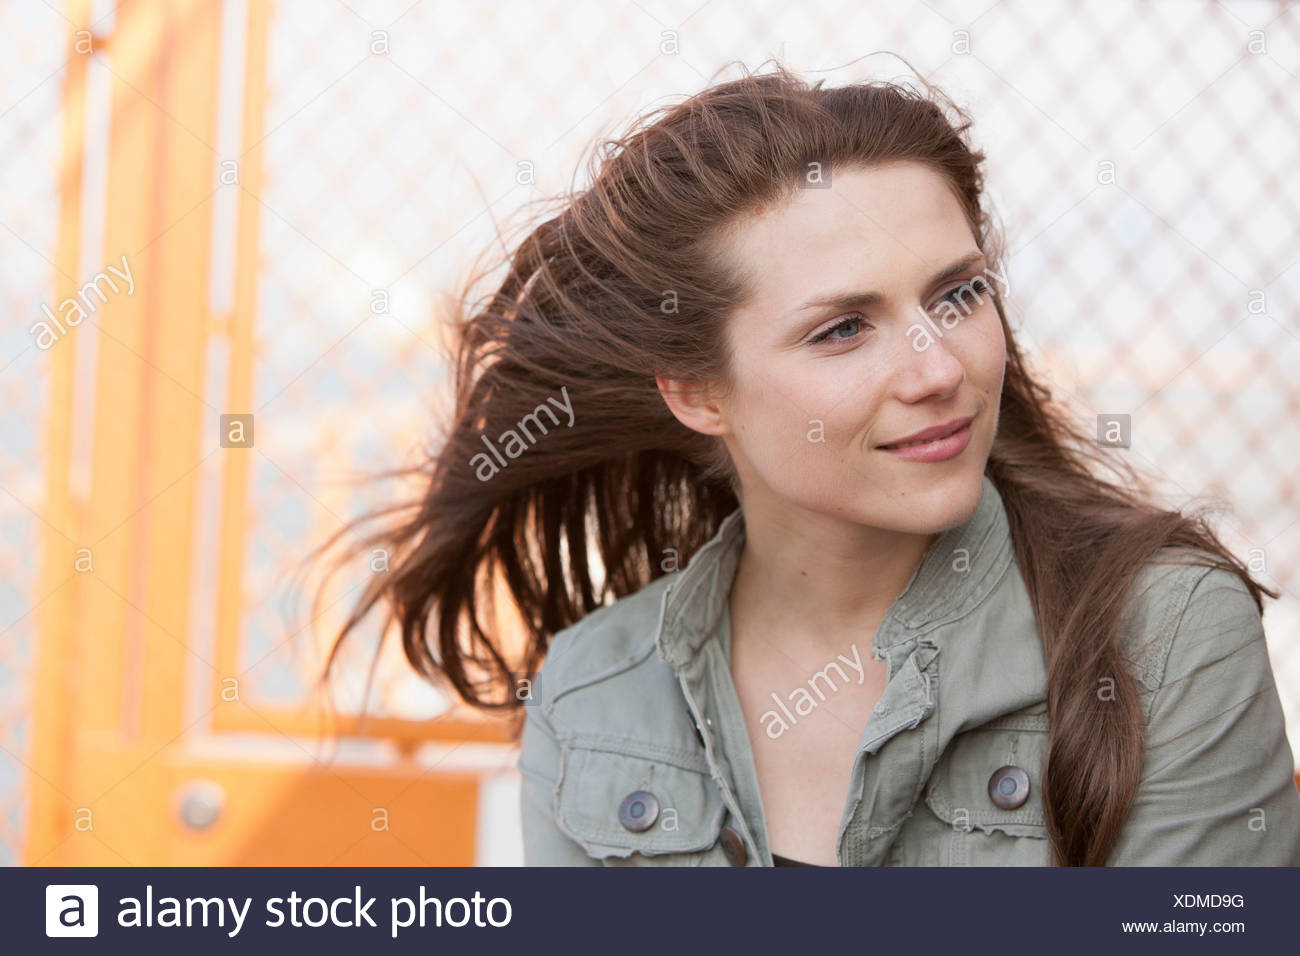 Portrait of a young woman outdoors - Stock Image